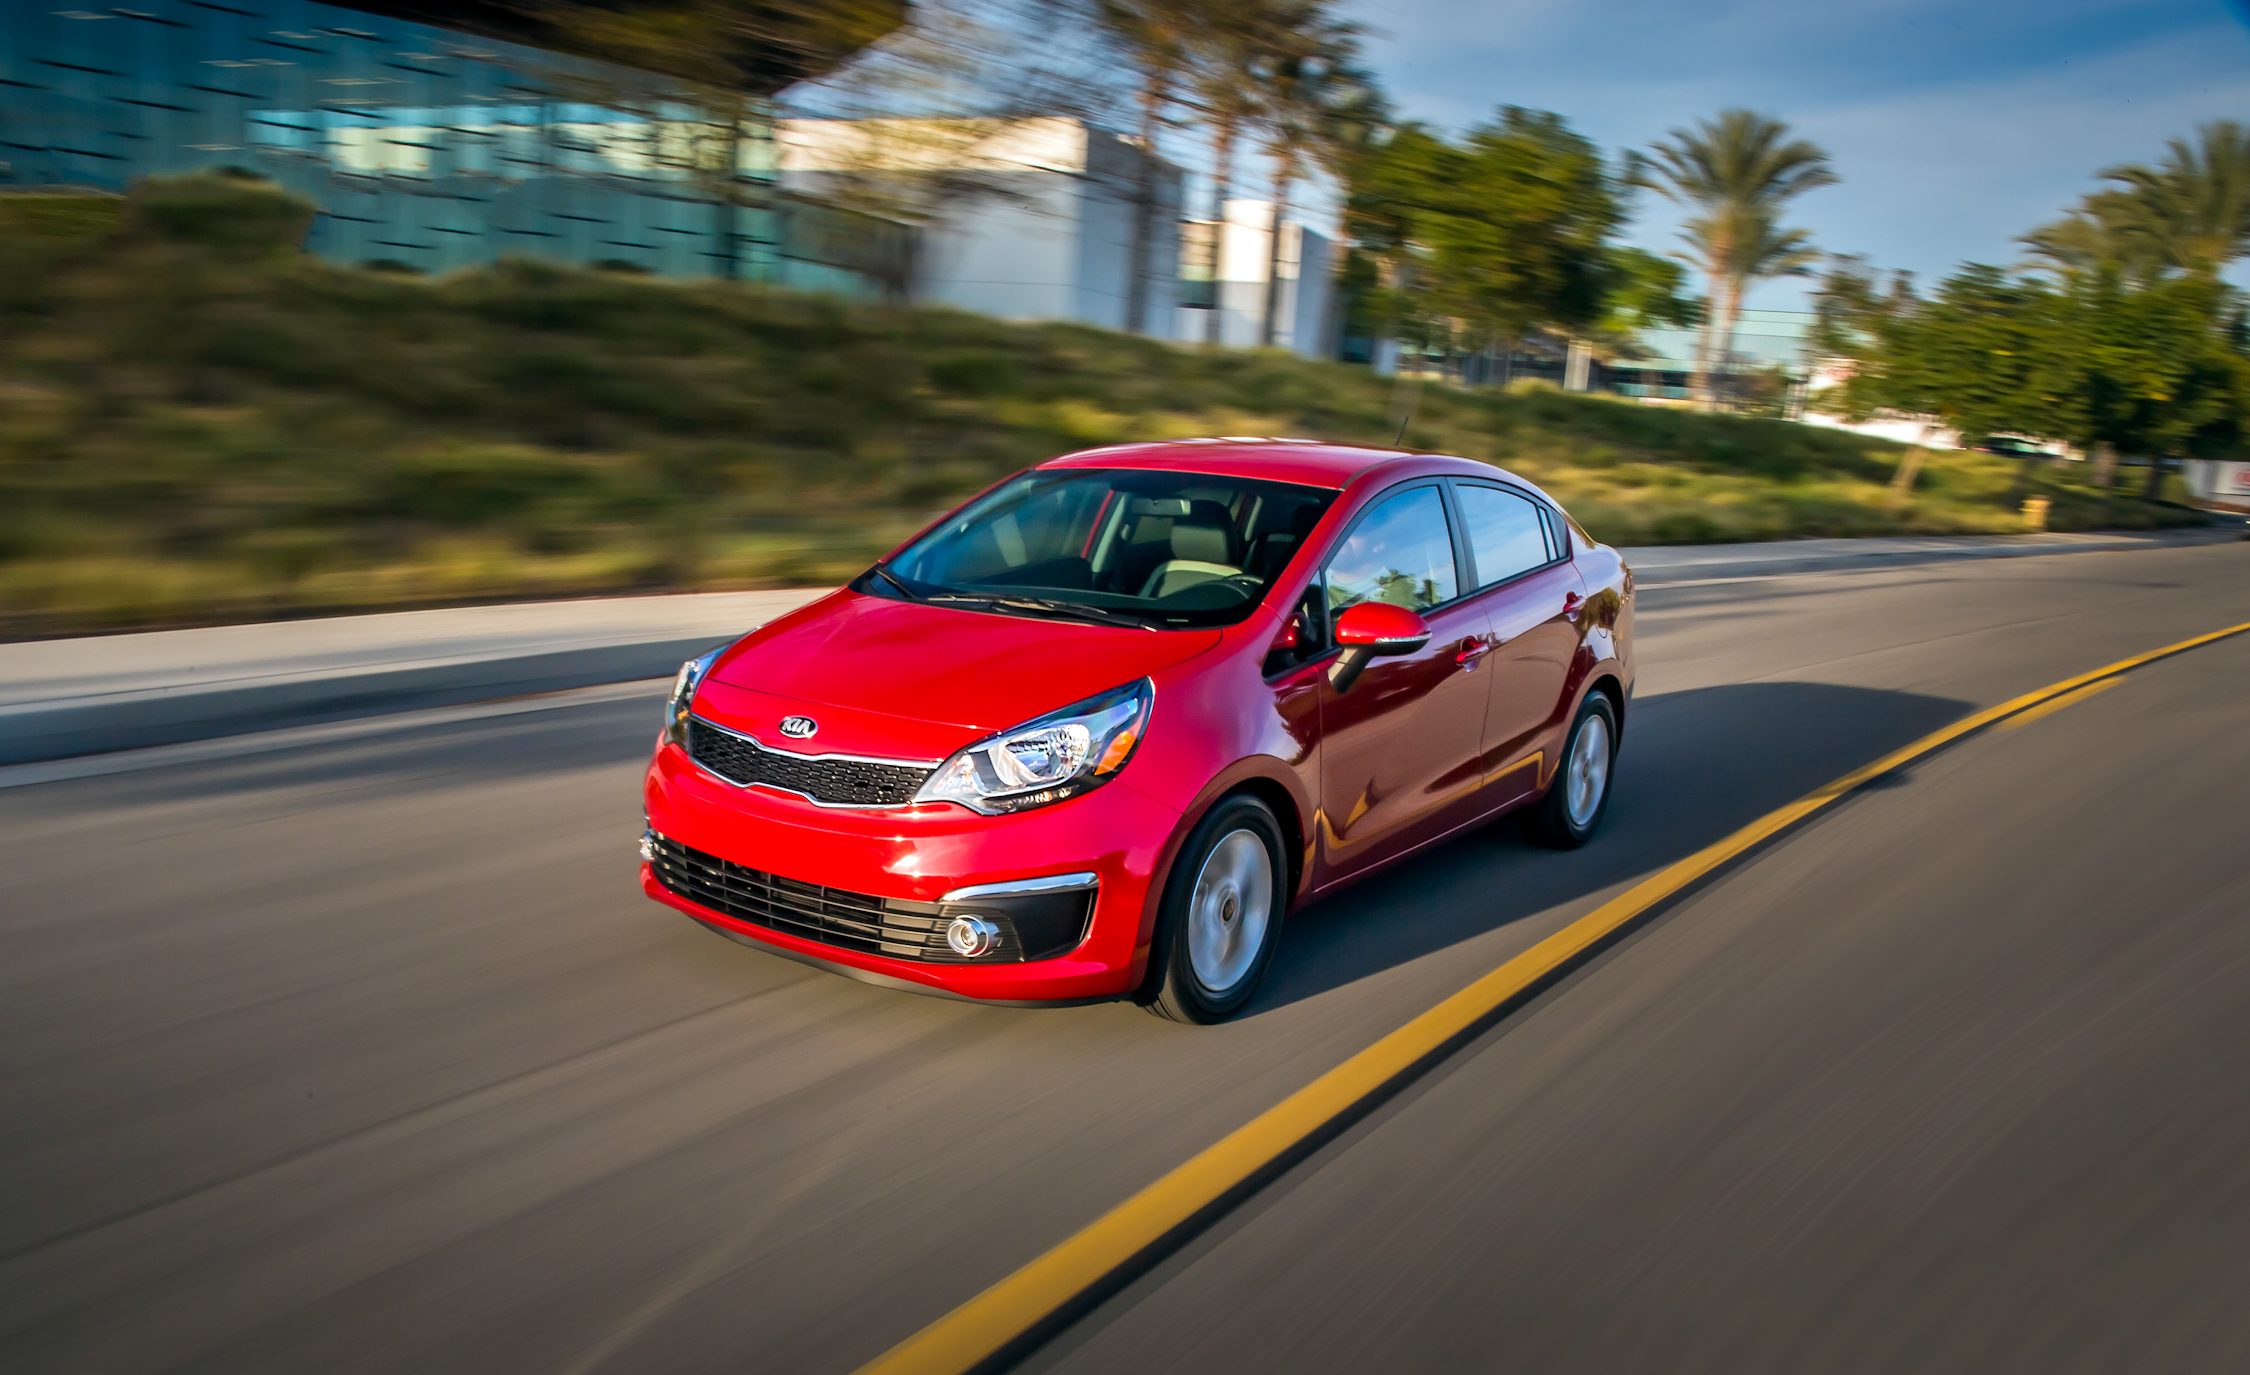 2016 Kia Rio Sedan (View 19 of 19)